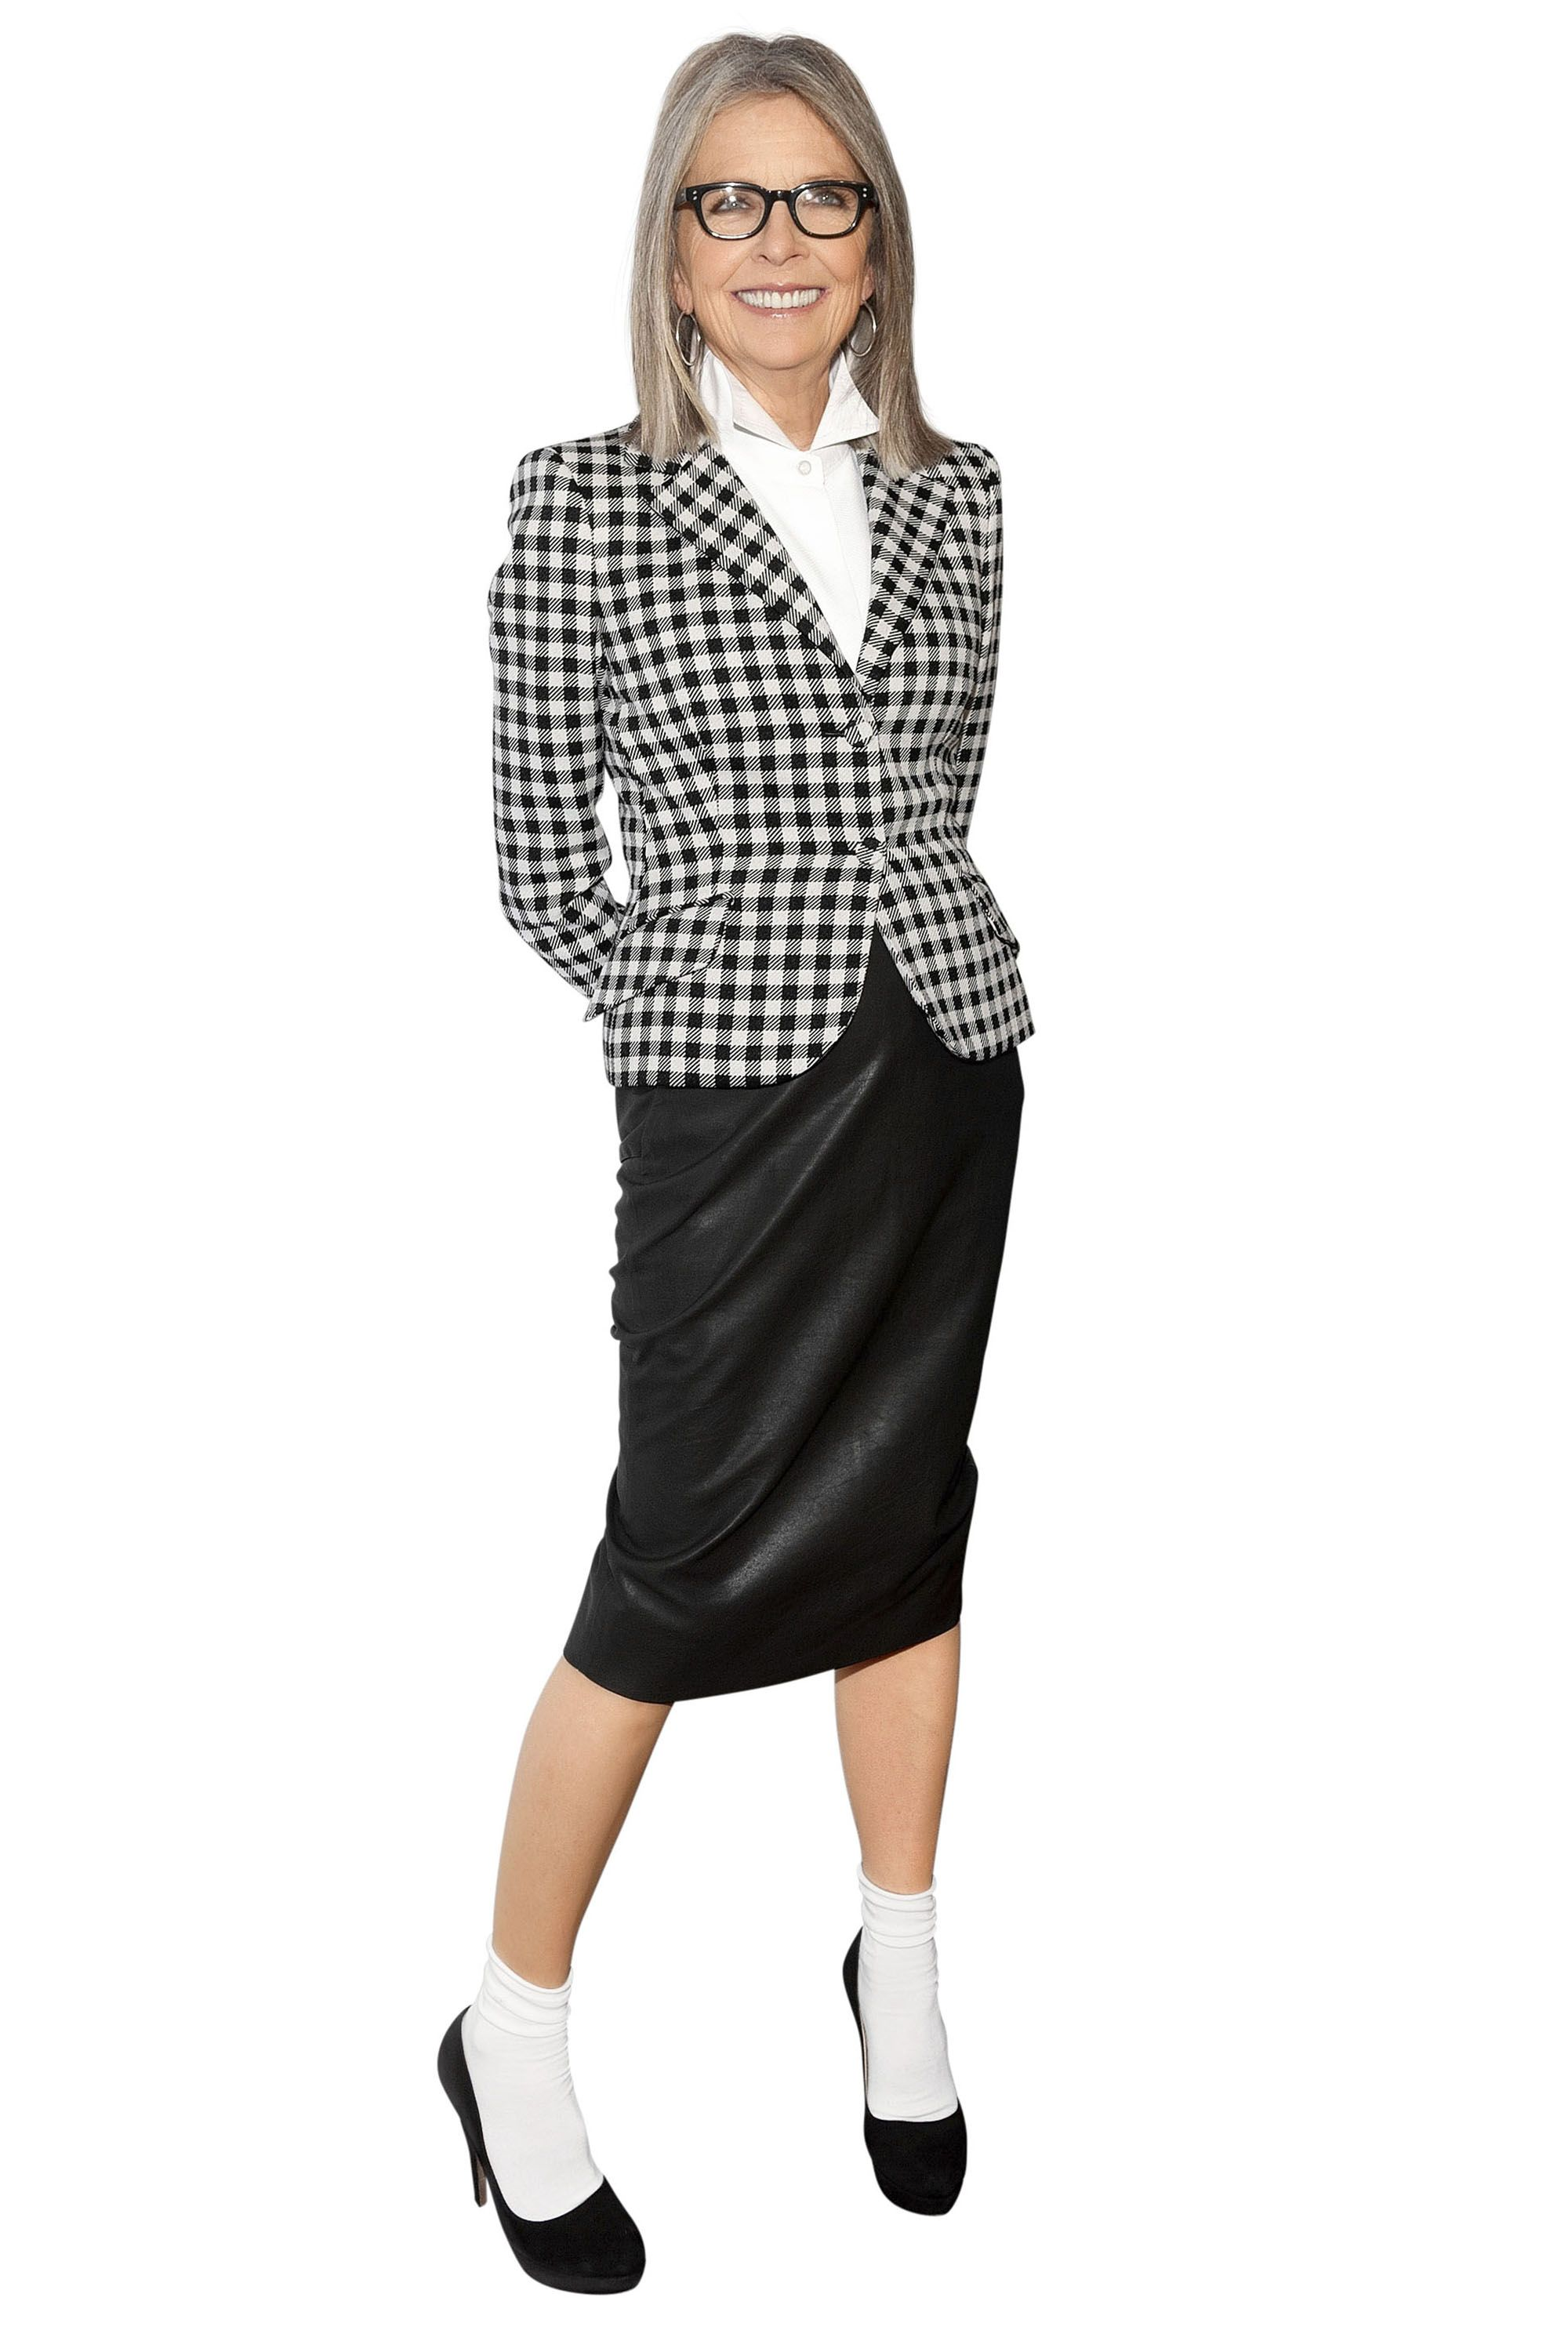 <p>Not only is she one of my ultimate style heroes, but she's also an actress whose talent I most admire. </p><p><em>Diane Keaton in vintage. </em><br></p>